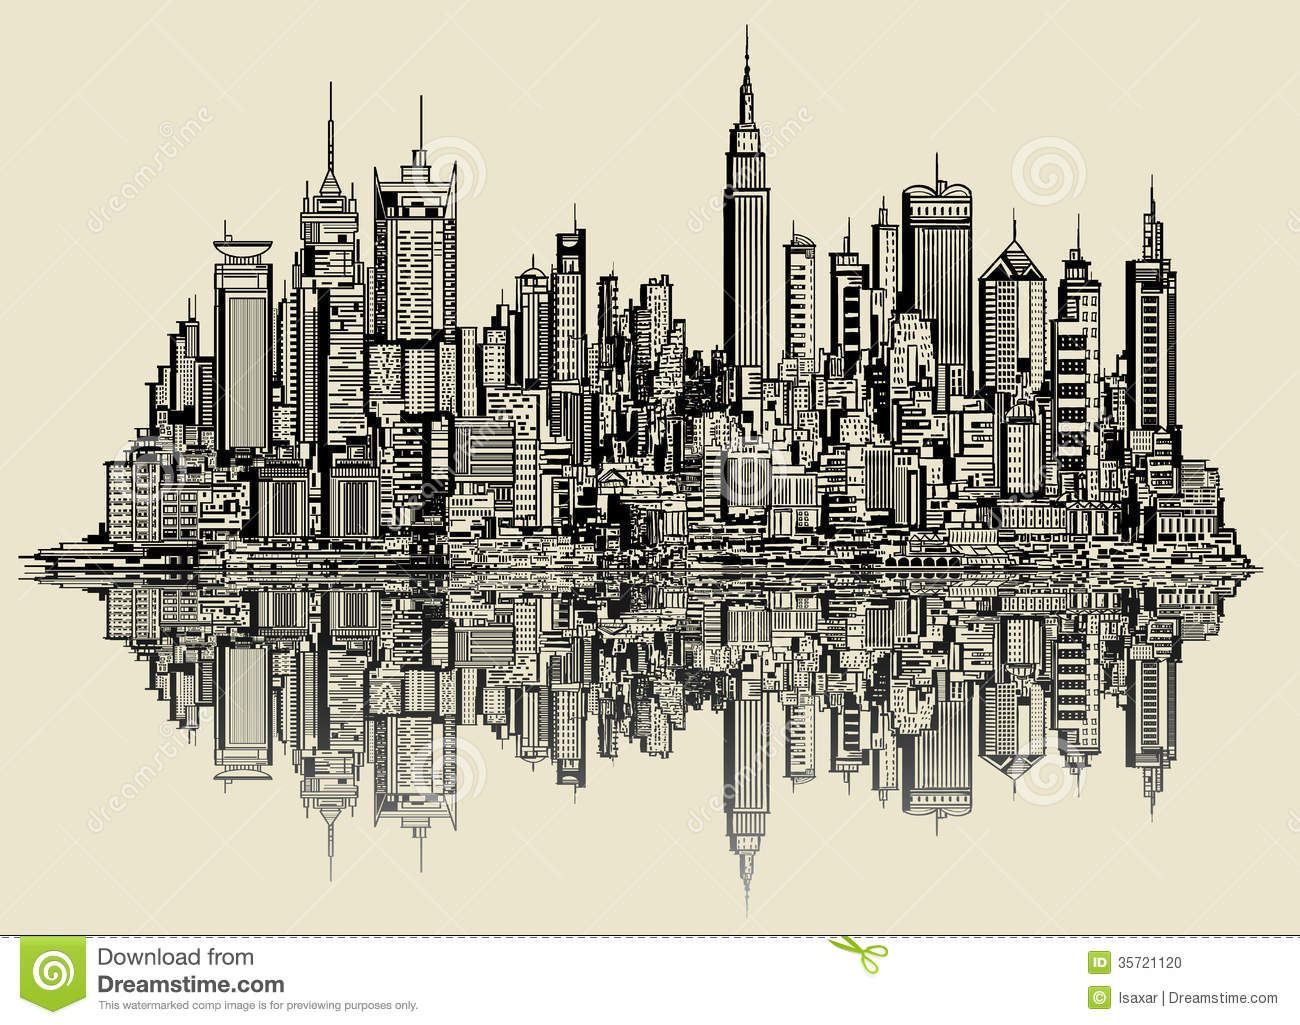 Vector illustration of a sketch of new york (fictitious).